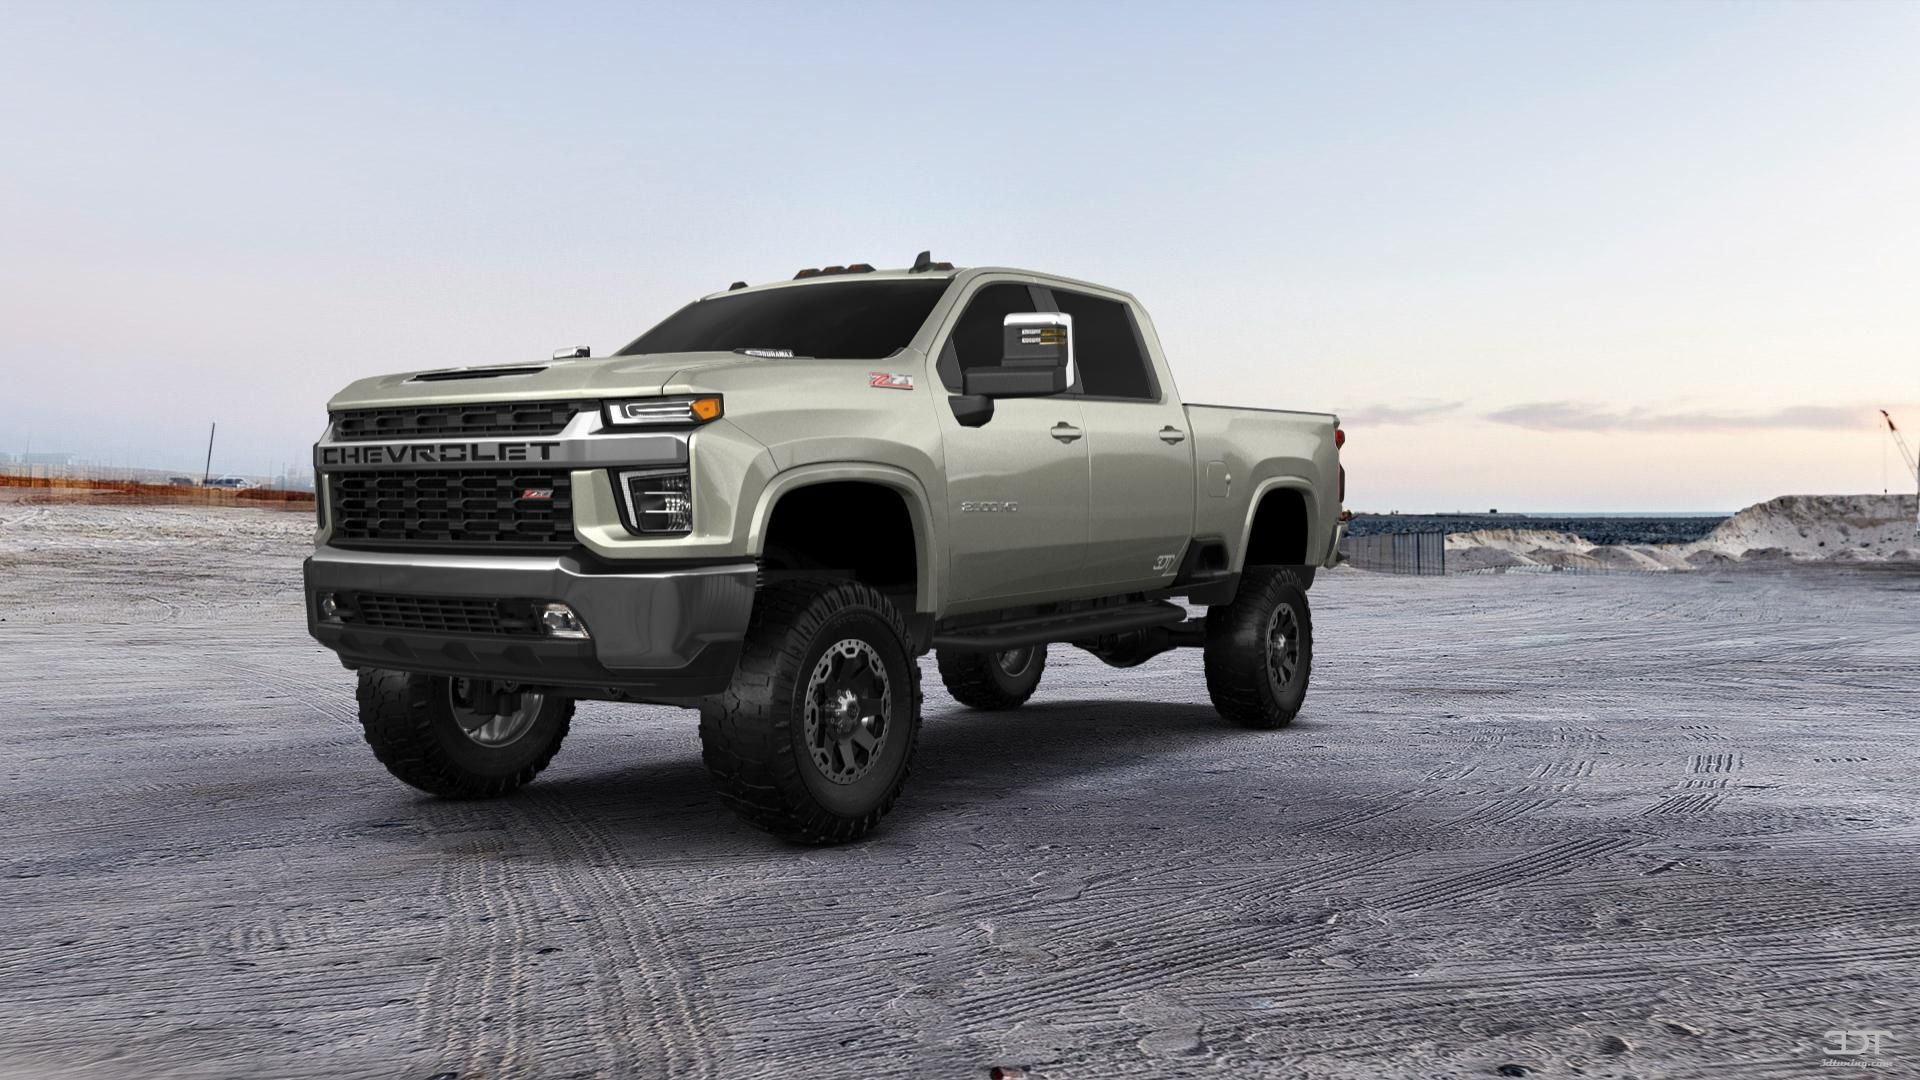 Checkout My Tuning Chevrolet Silverado2500hd 2020 At 3dtuning 3dtuning Tuning Silverado 2500 Hd Chevy Duramax Silverado